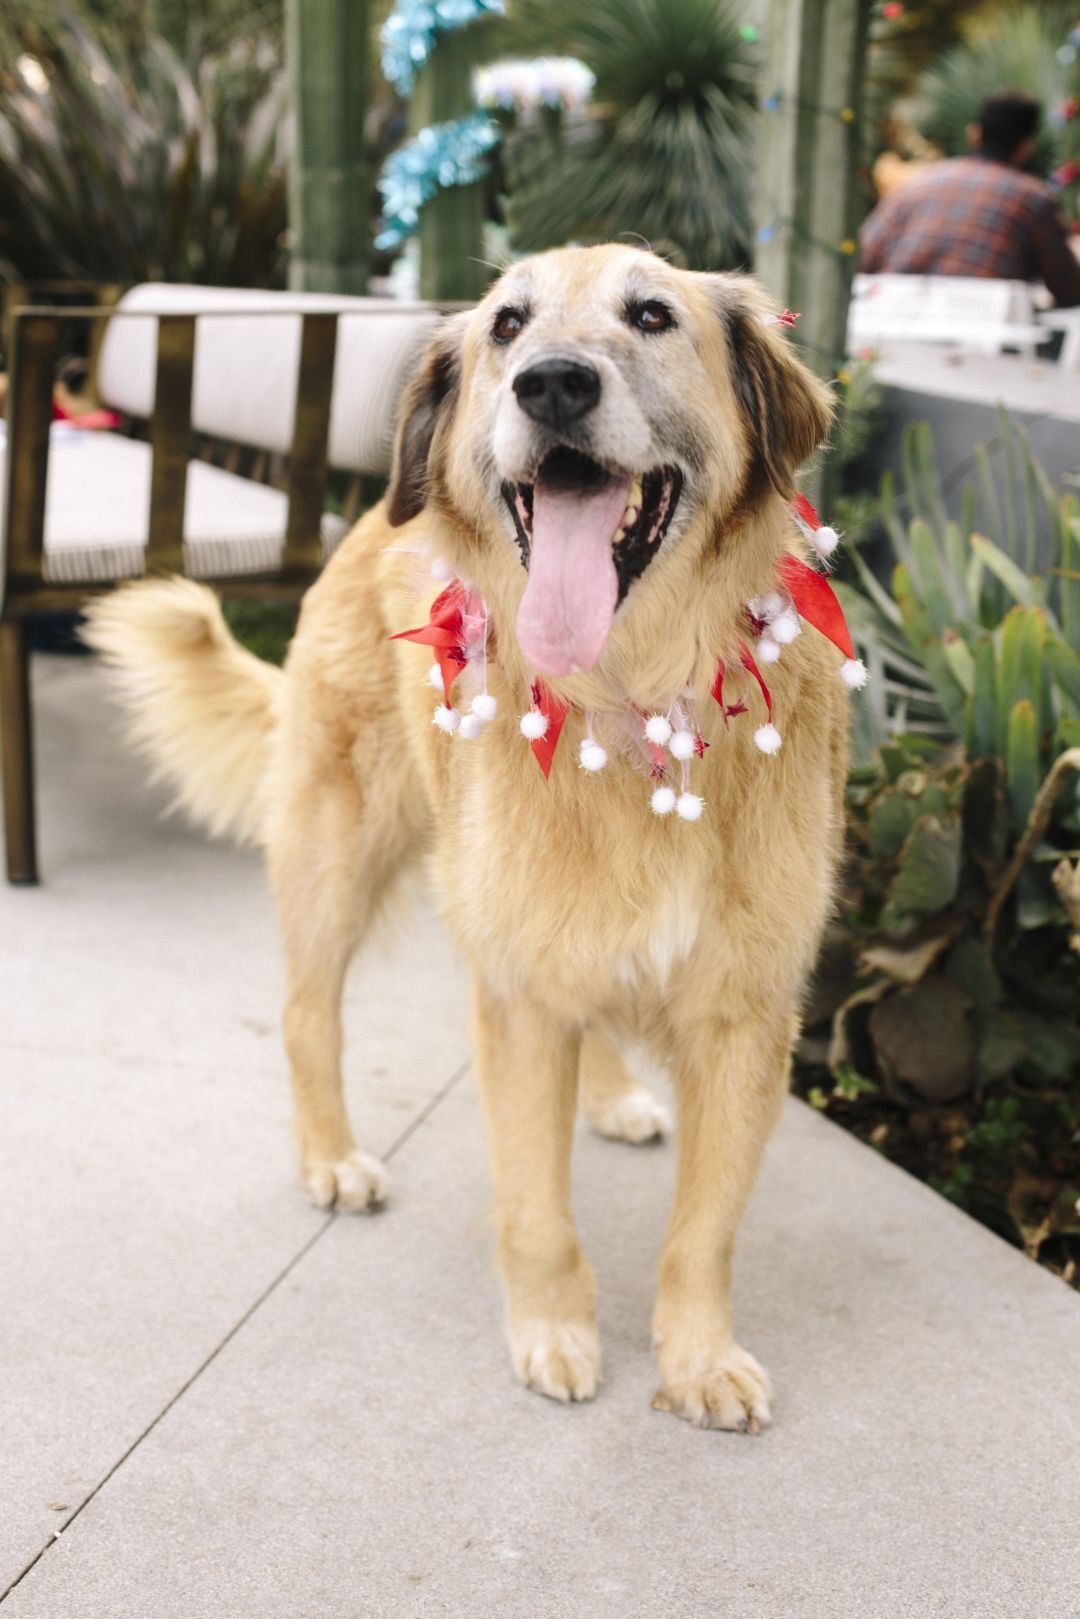 Craigslist Los Angeles Pet Services - Pets and Animal ...